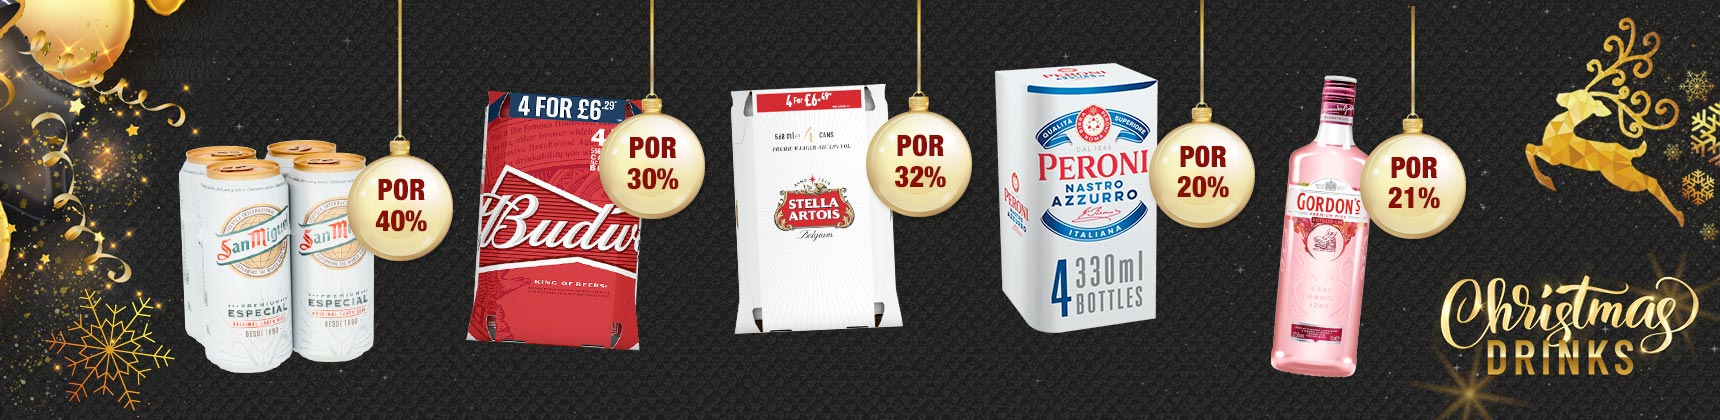 Christmas Drink Deals